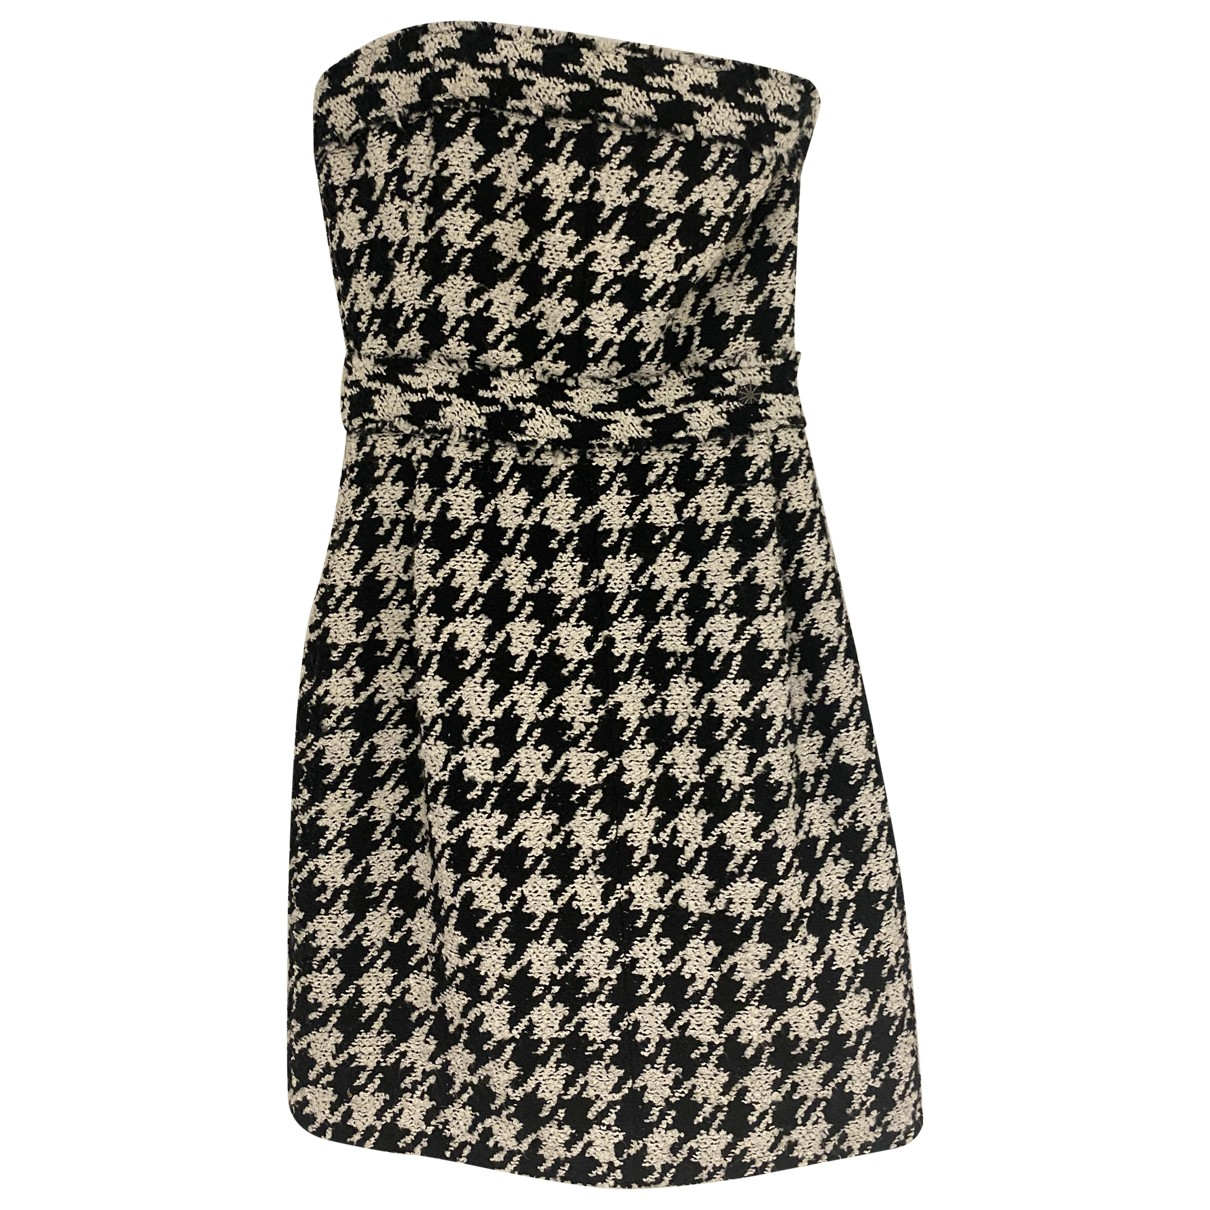 Chanel \N Kleid in  Schwarz Tweed